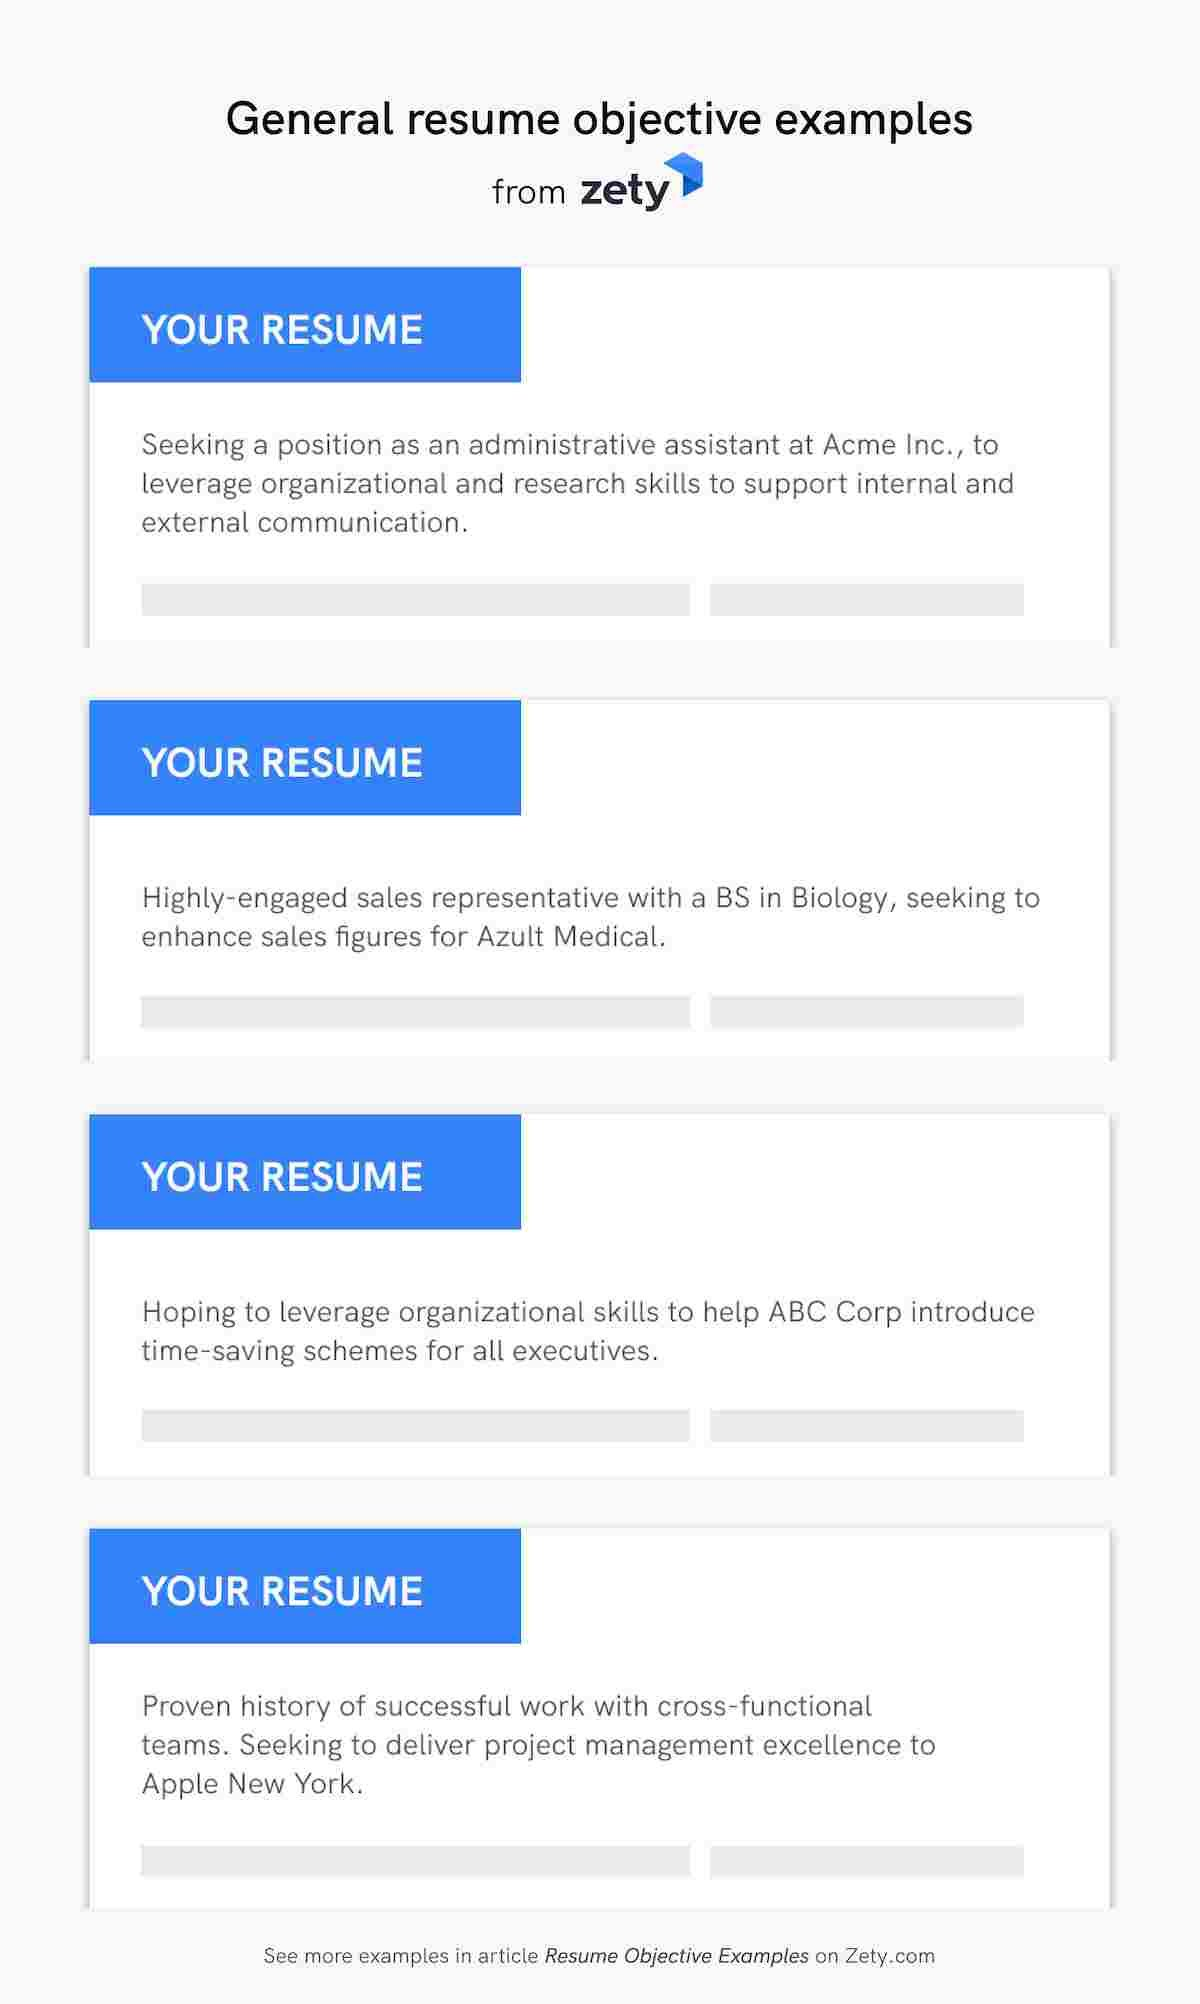 resume objective examples career objectives for all jobs statement general out of college Resume Resume Objective Statement